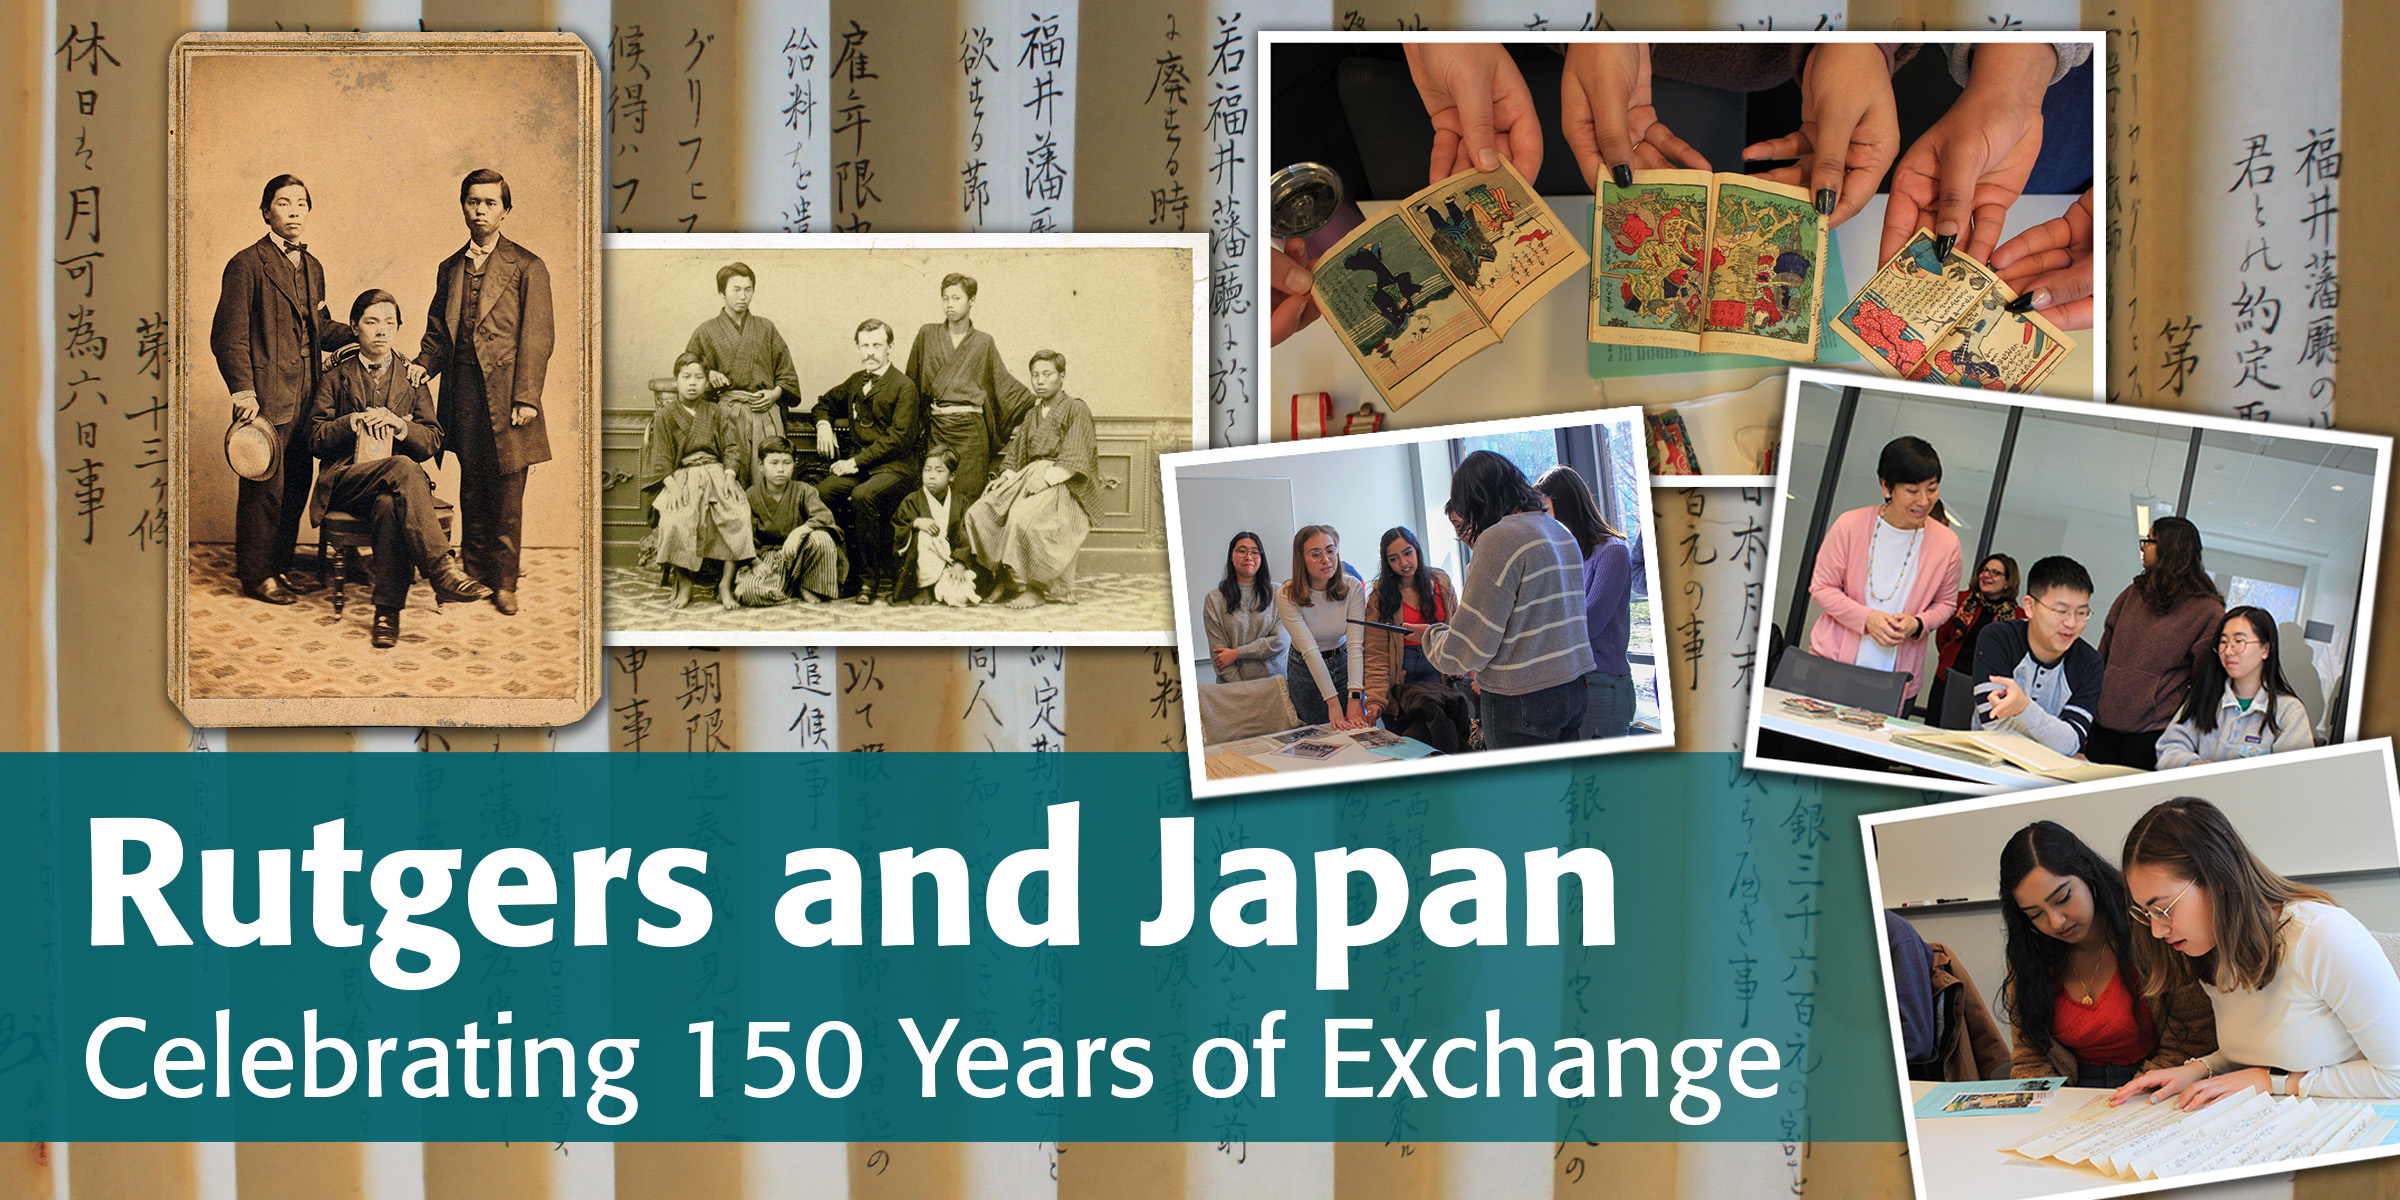 Rutgers and Japan: Celebrating 150 Years of Exchange